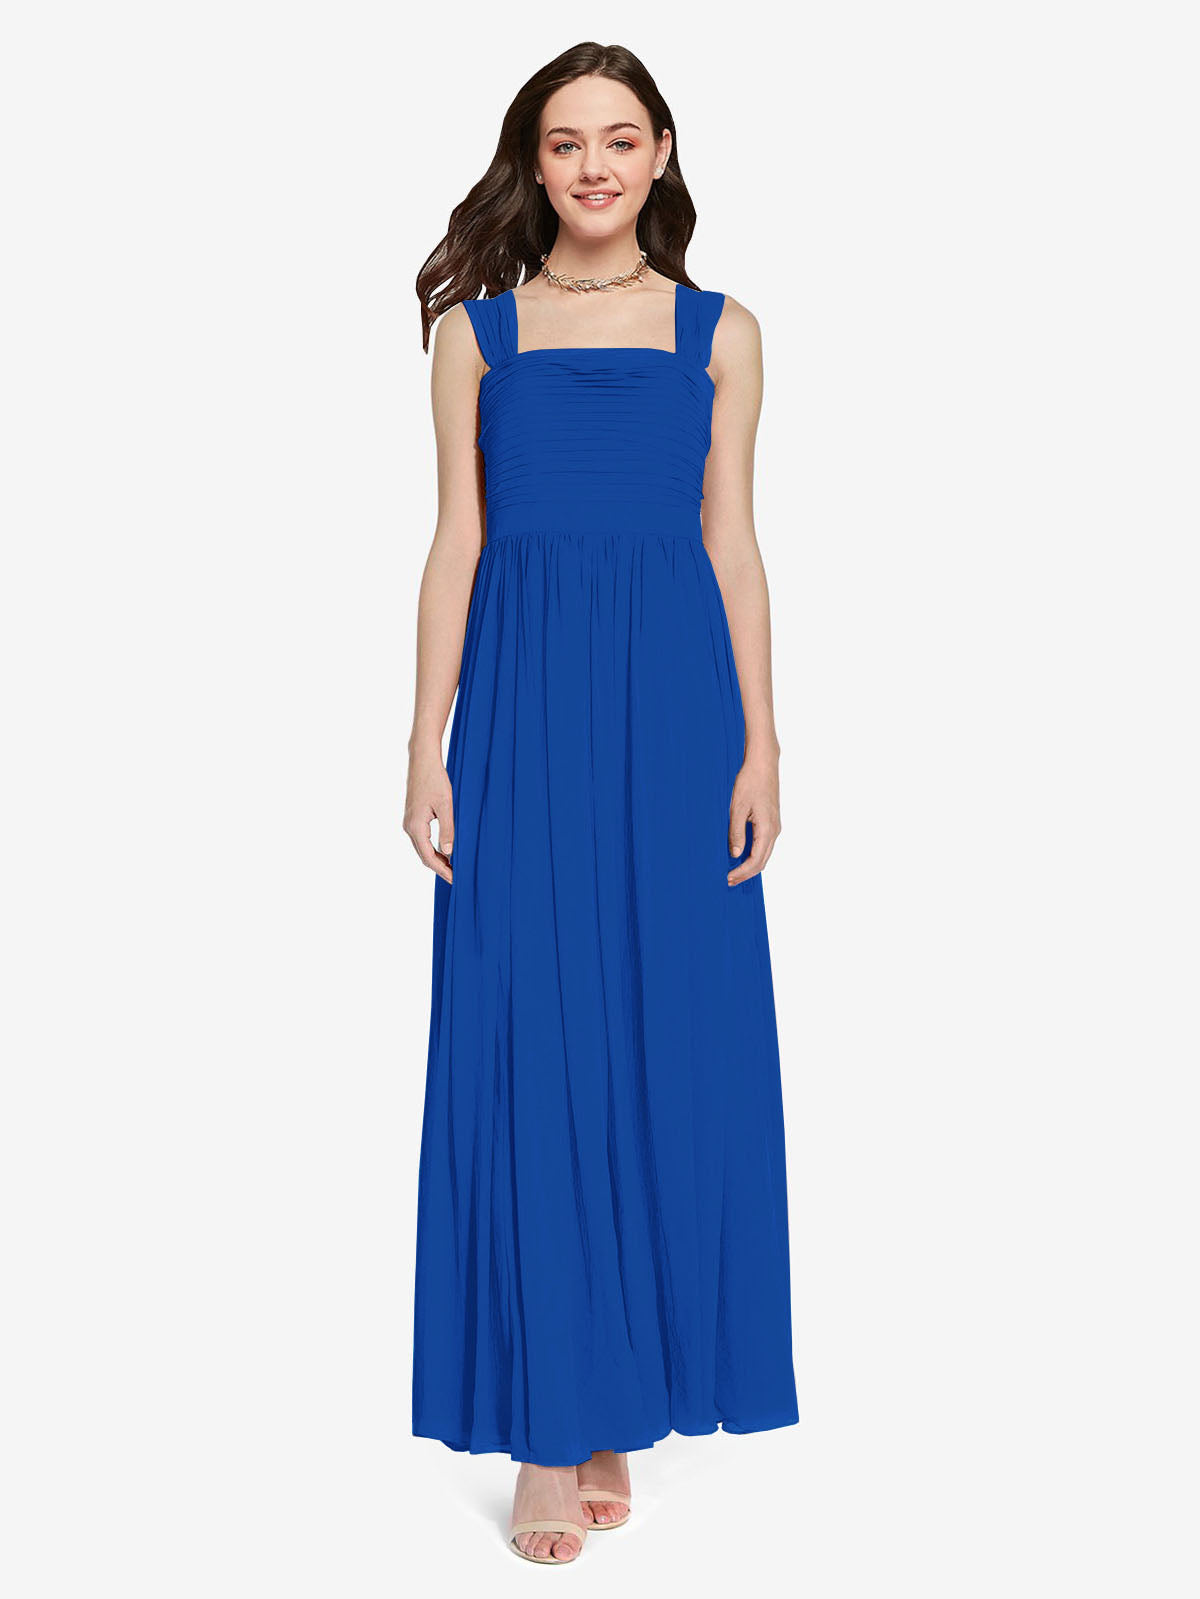 Long A-Line Square Sleeveless Royal Blue Chiffon Bridesmaid Dress Aldridge